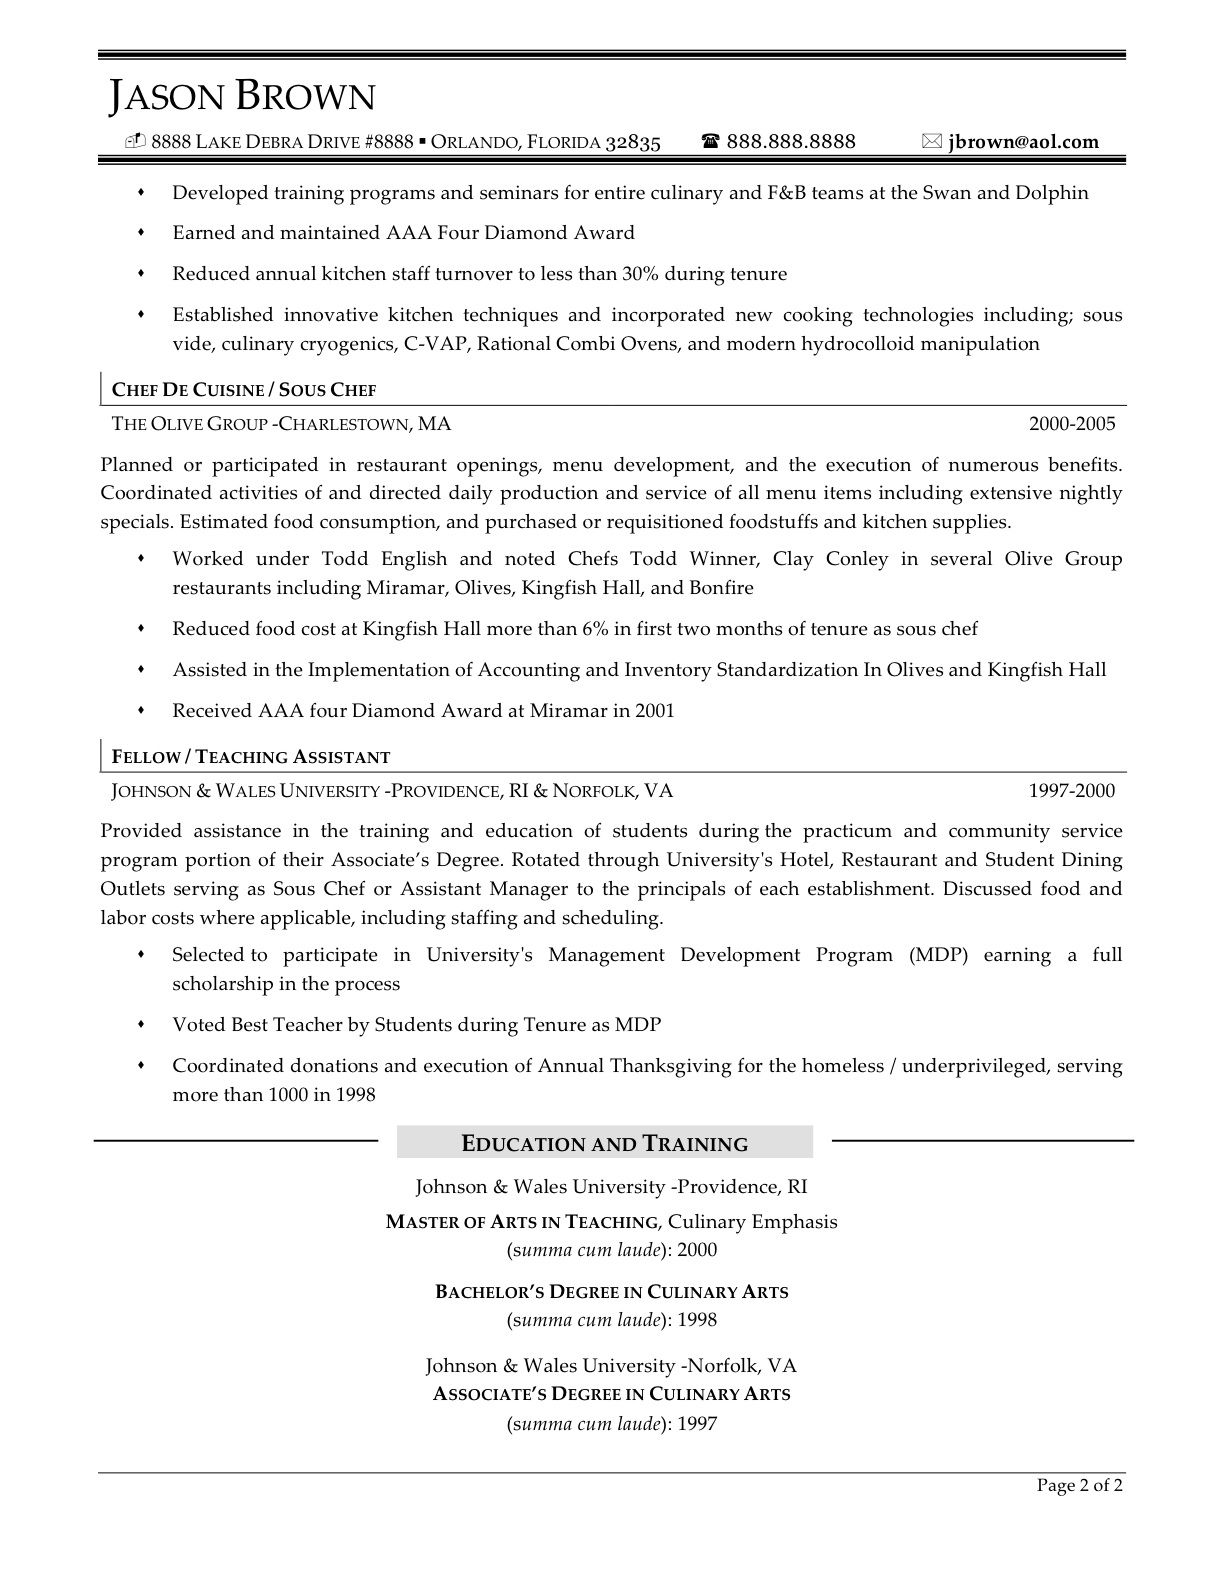 sample resume apprentice chef resume templates sample resume apprentice chef sample resume chef resume it training and consulting chef resume objective and